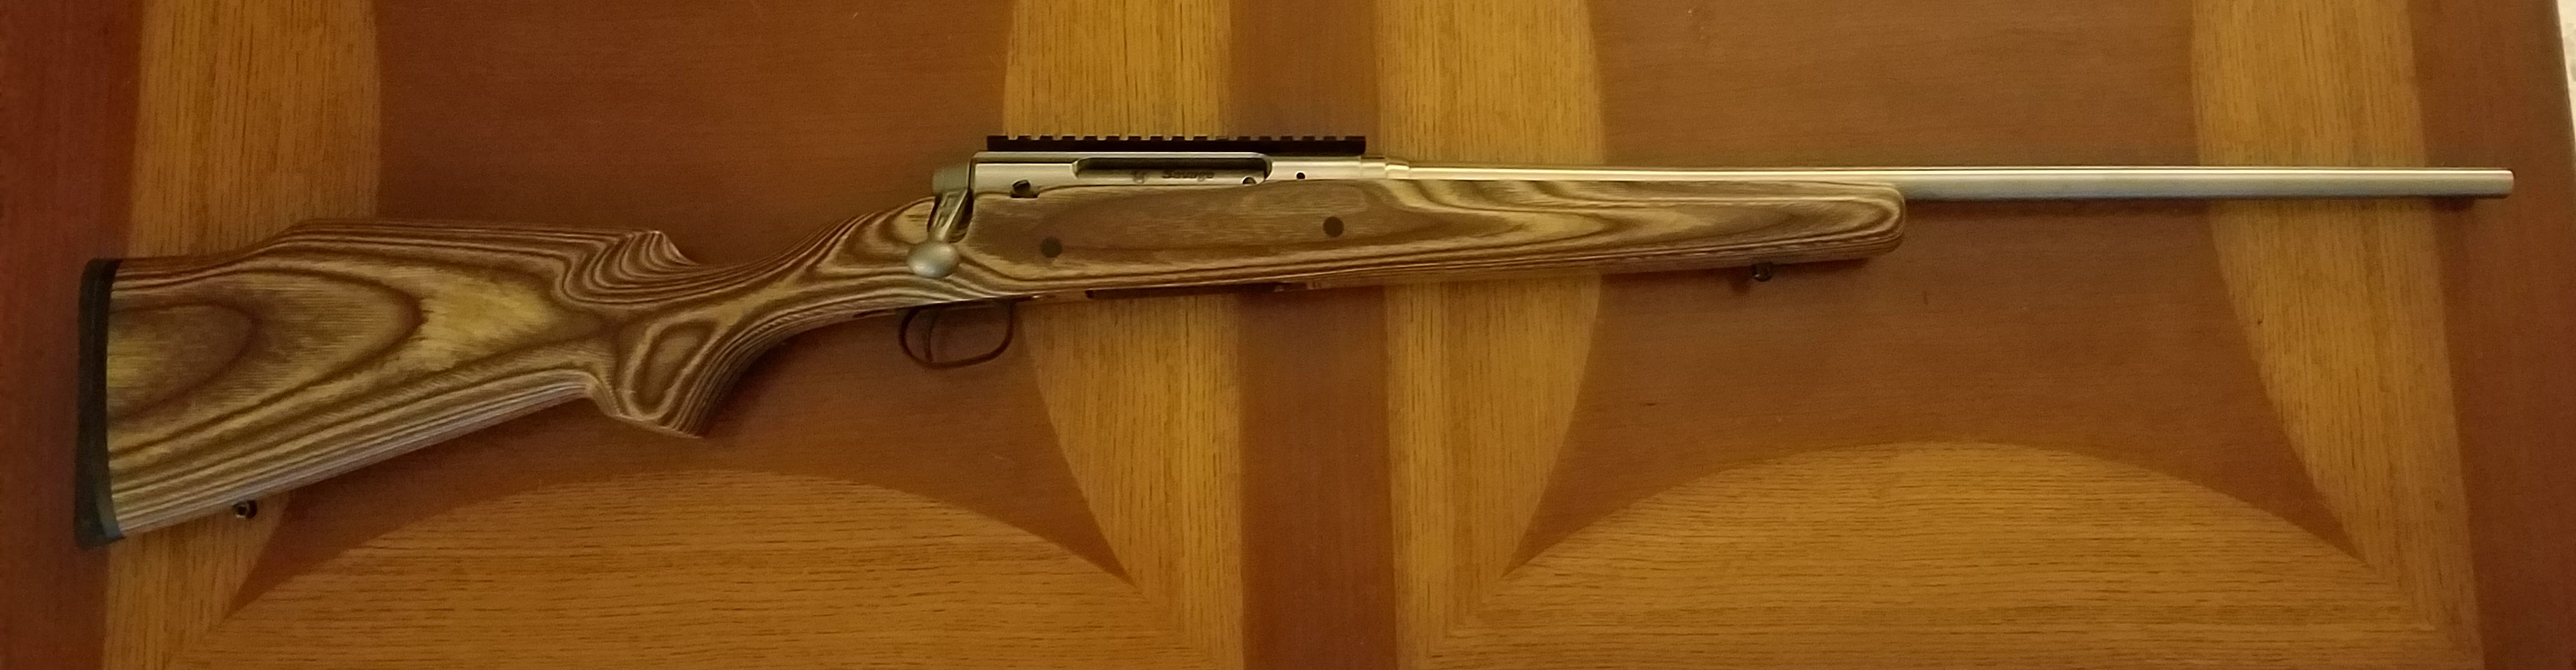 WTS:  Savage Axis 22-250 Stainless plus lots of extras-20180908_054606.jpg